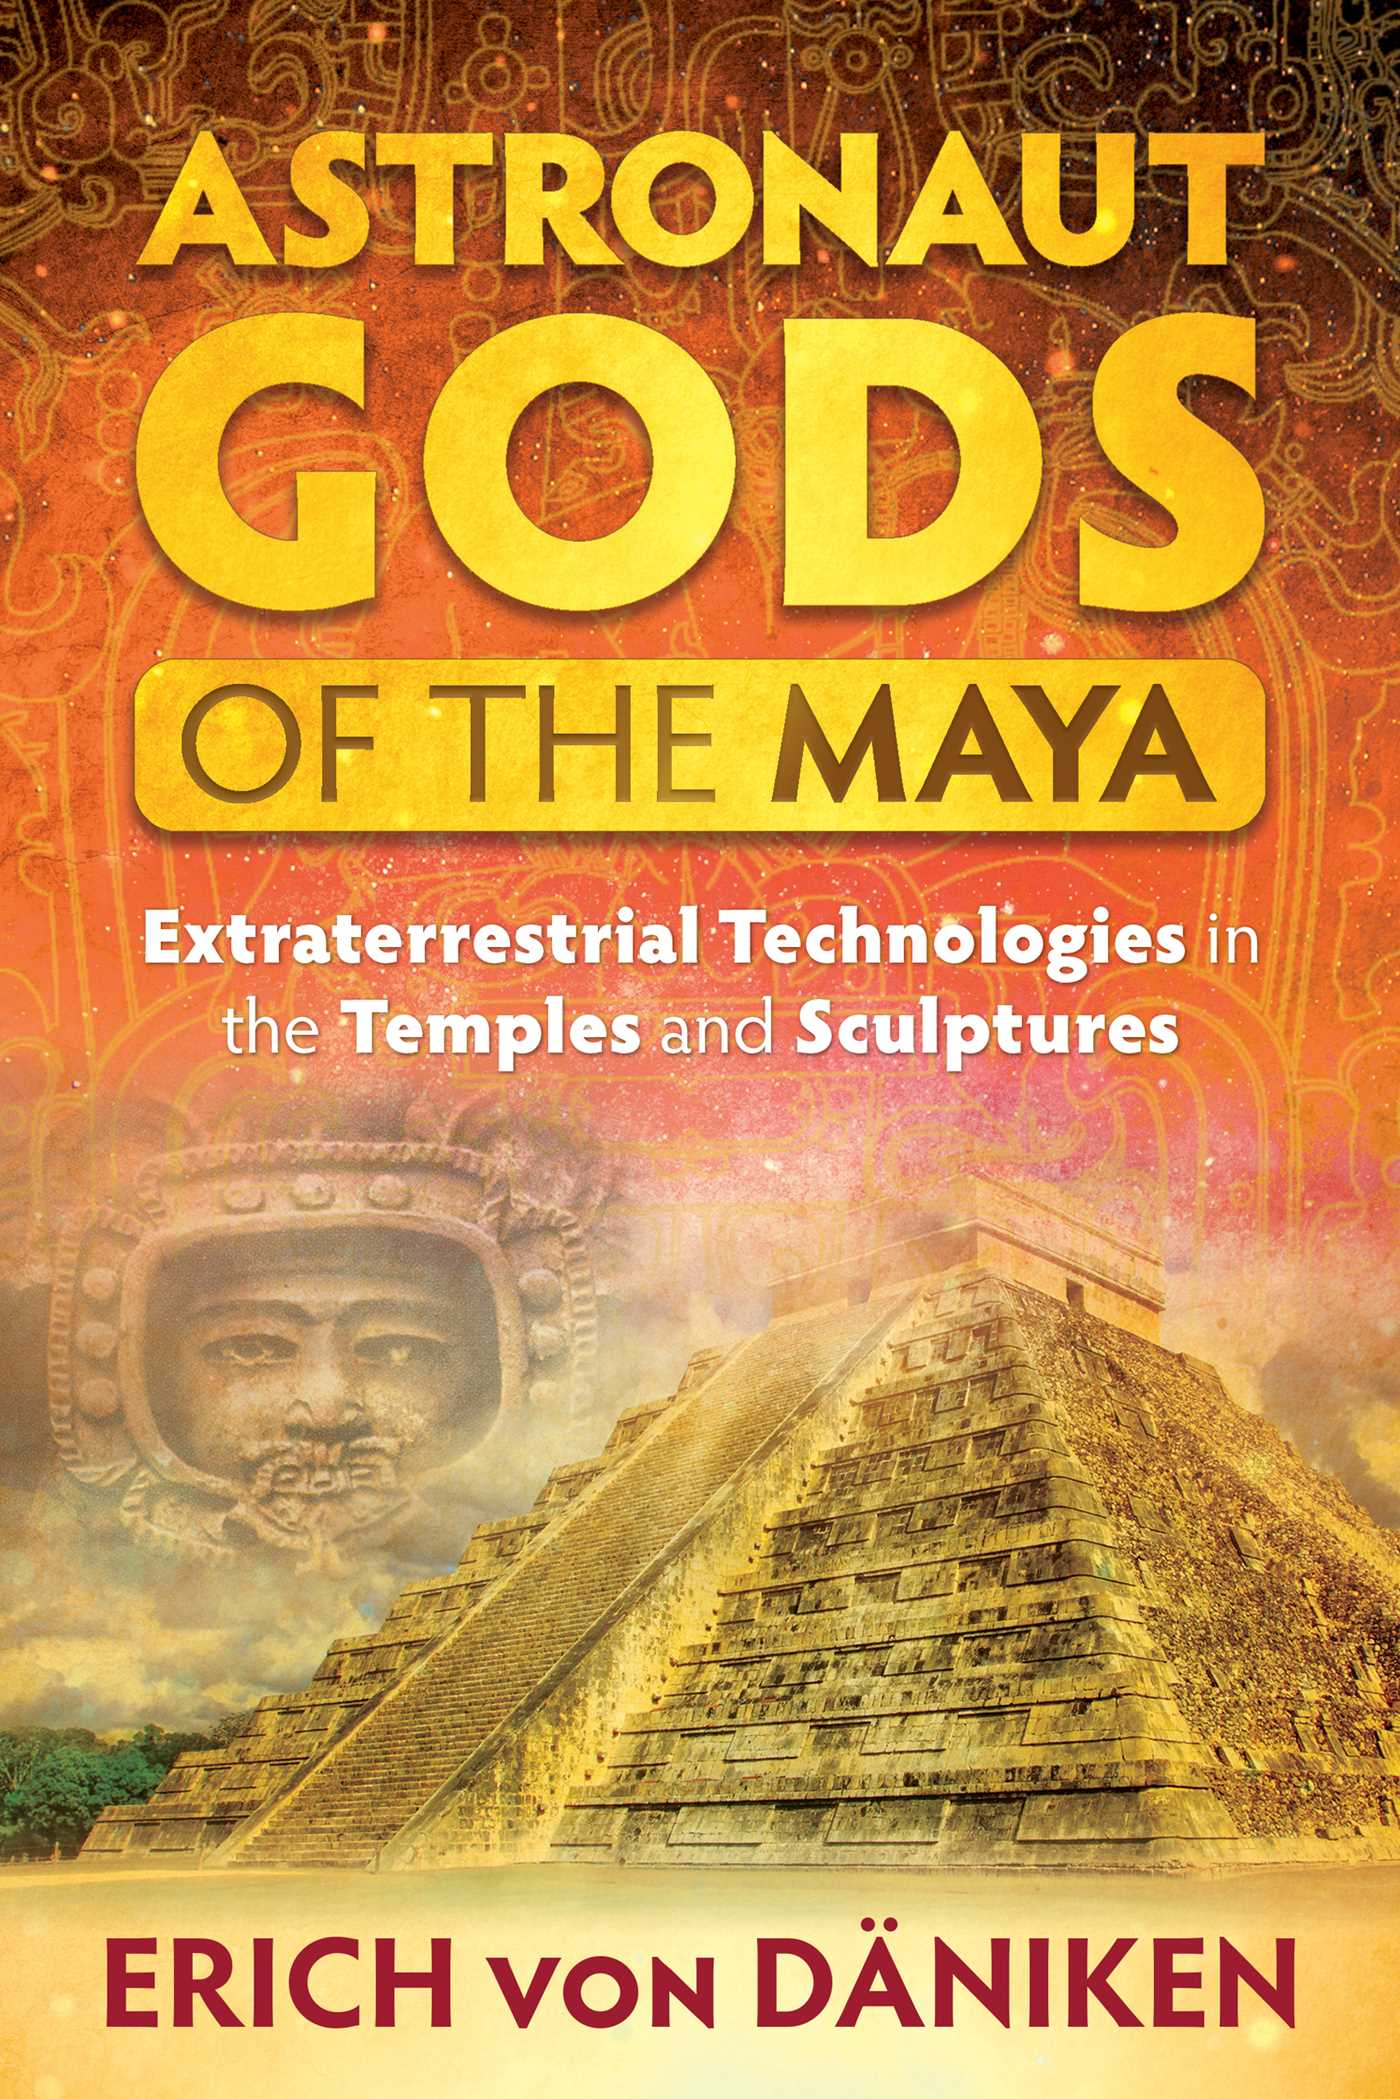 Astronaut gods of the maya 9781591432364 hr